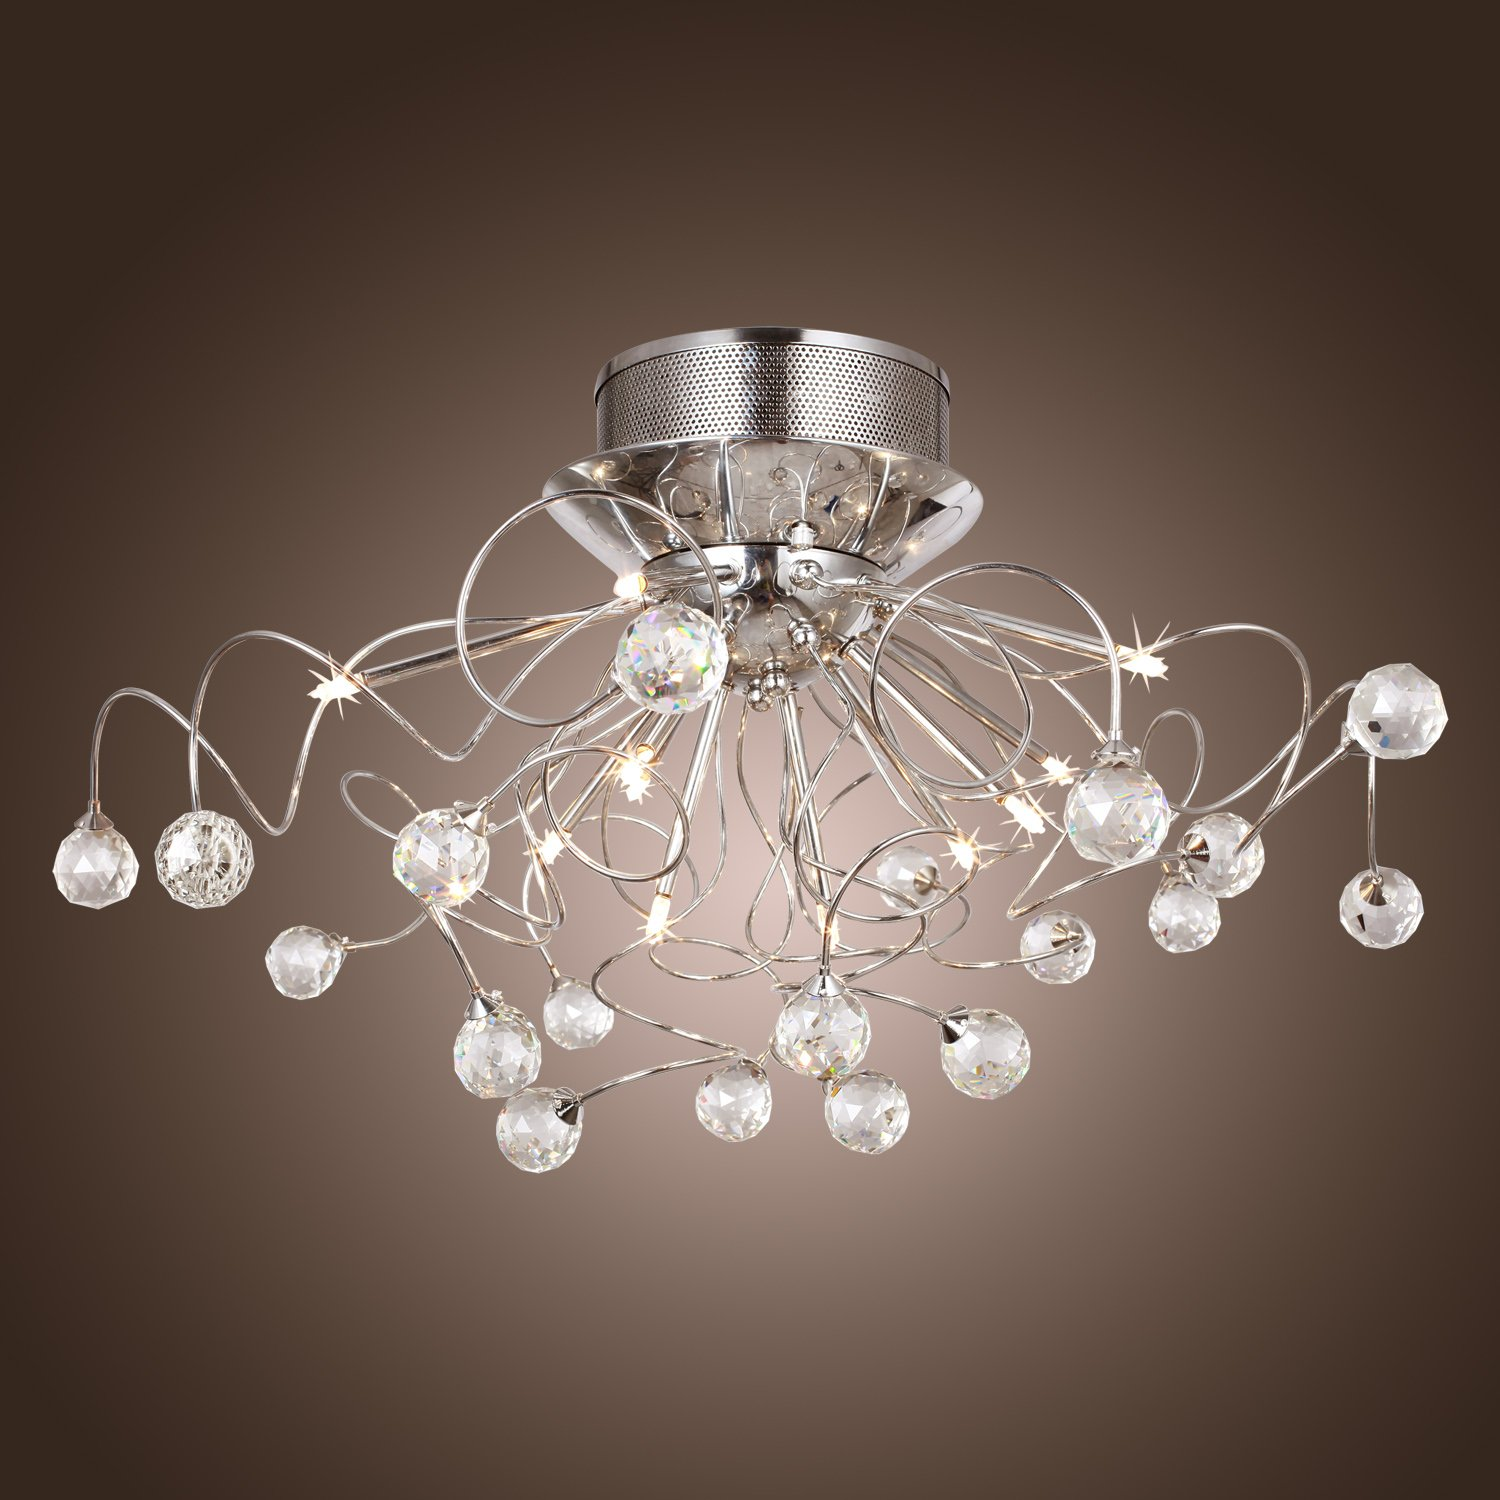 LightInTheBox 11 Light Contemporary K9 Crystal Chandelier Lighting (Bulb  Included), Chrome, Flush Mount, Chandeliers Modern Ceiling Light Fixture  for ...